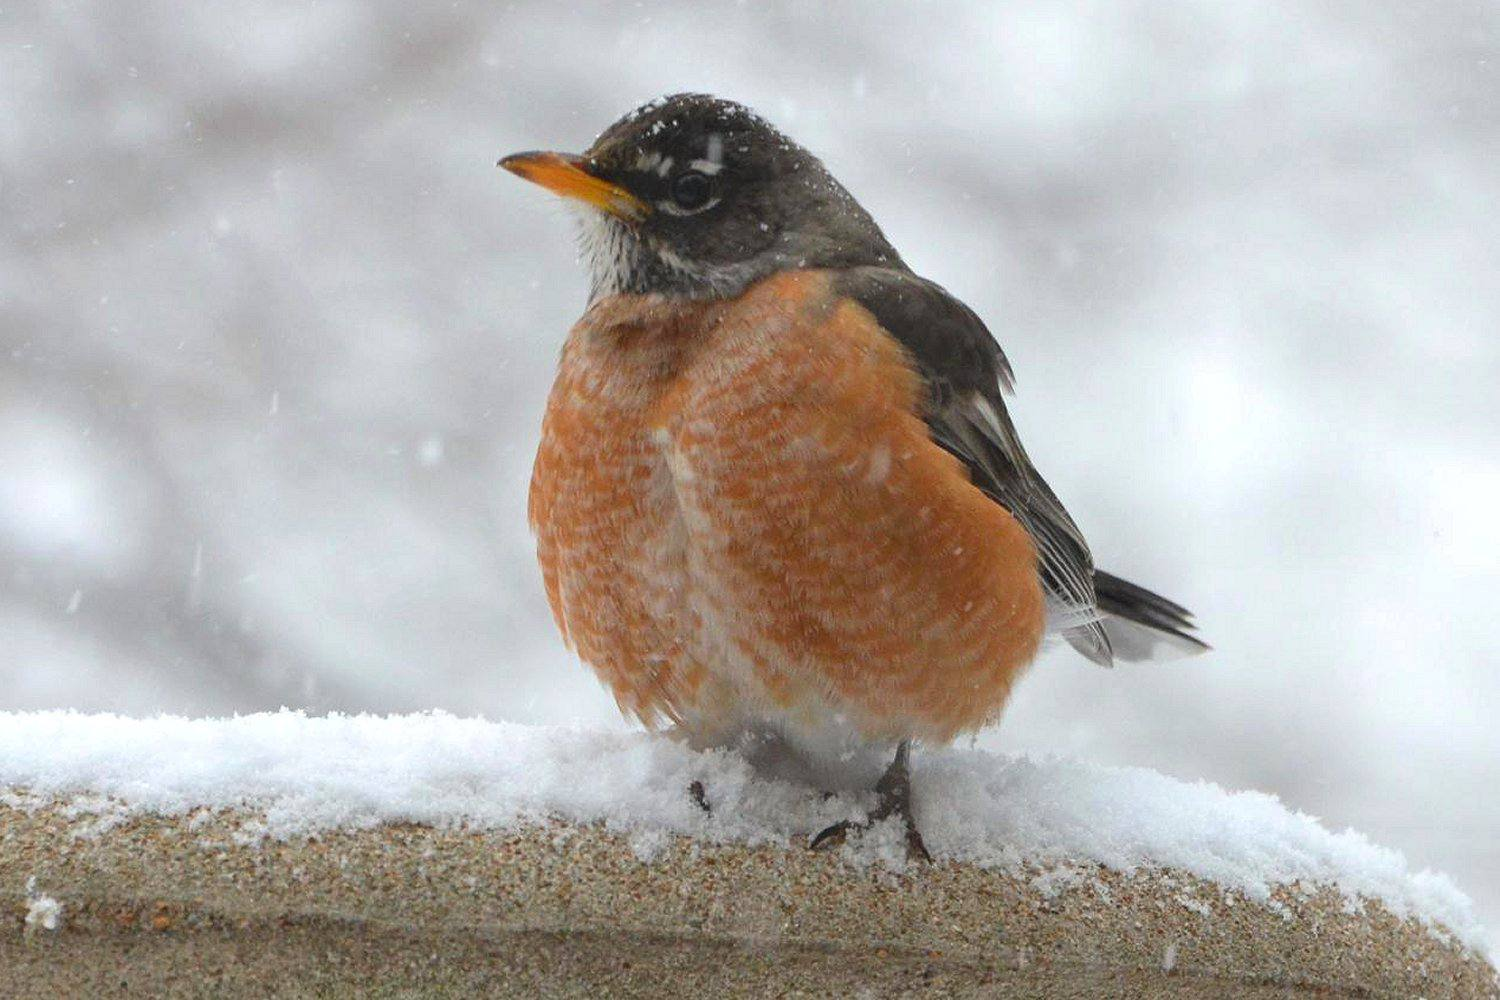 American Robin standing in the snow